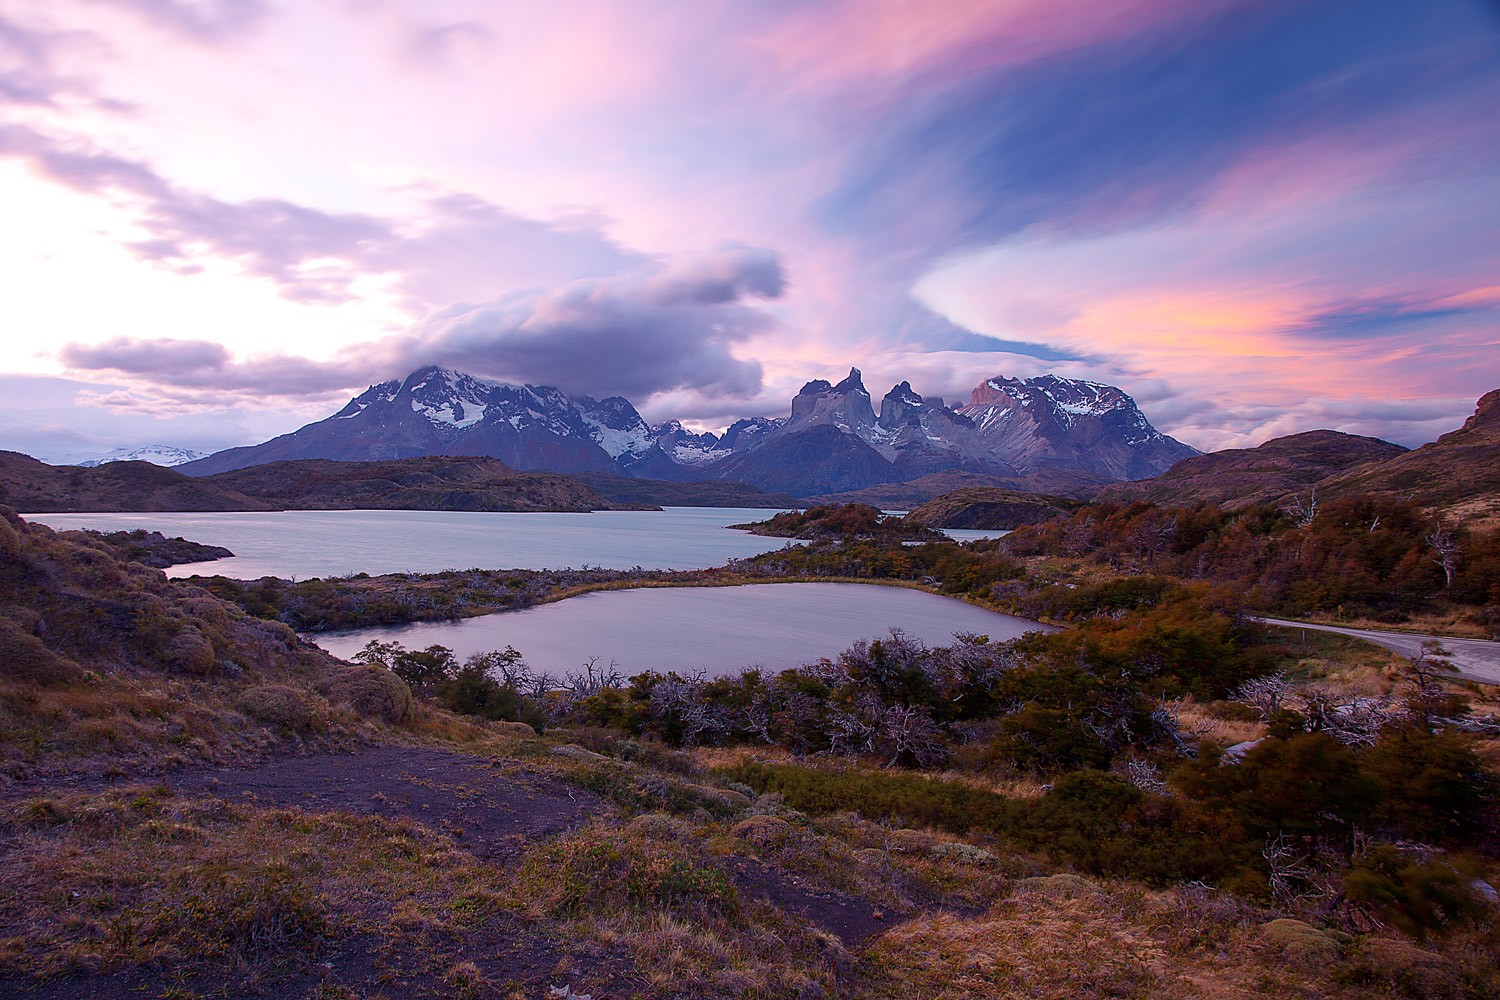 How-to-Find-and-Photograph-Wild-Landscapes-and-Create-Epic-Images-03